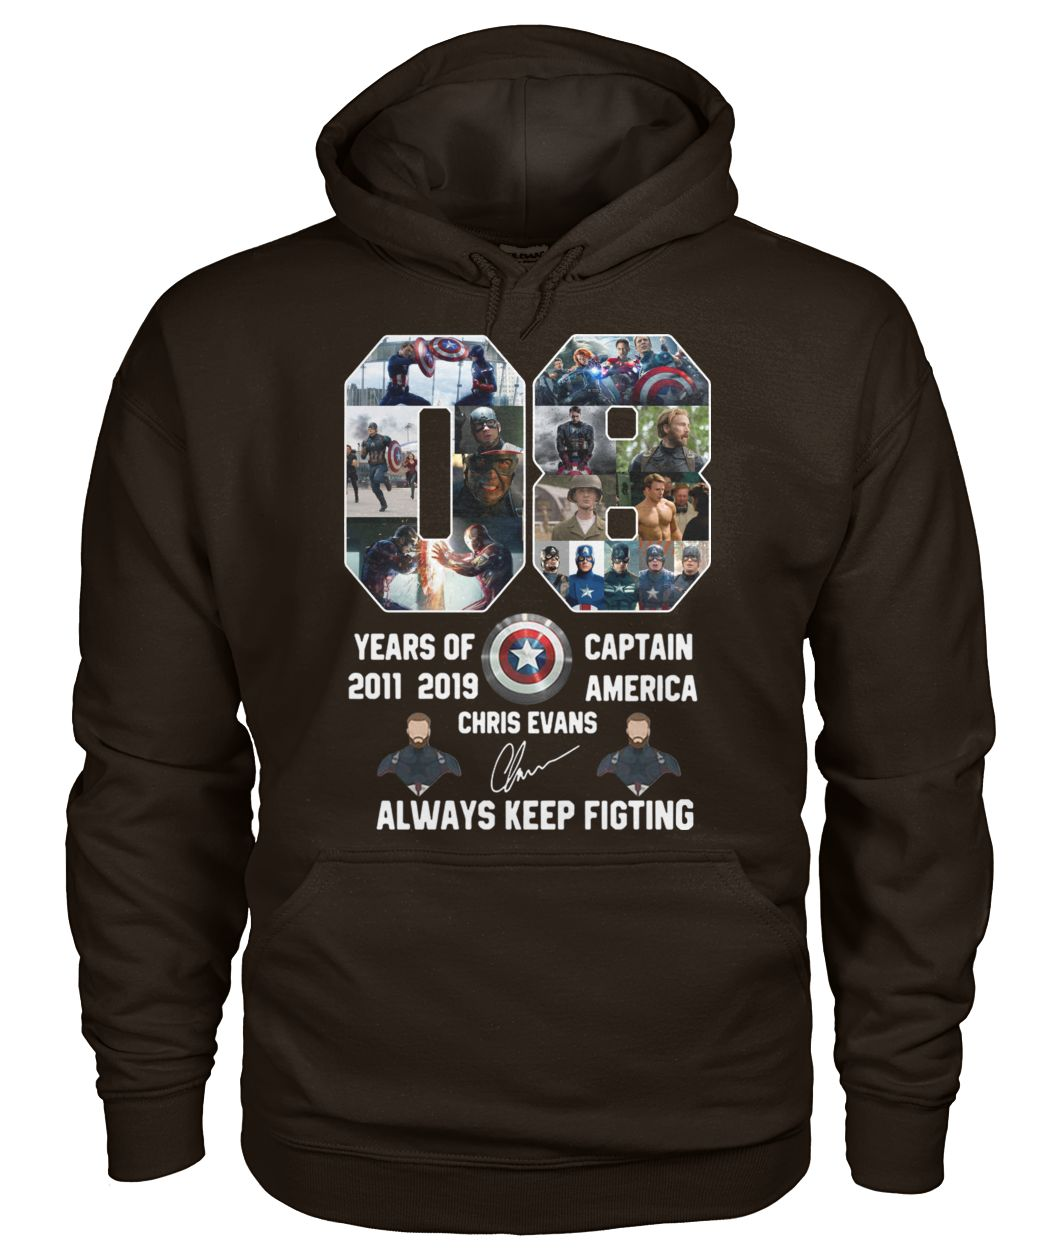 08 years of captain america 2011 2019 chris evans signature always keep fighting gildan hoodie